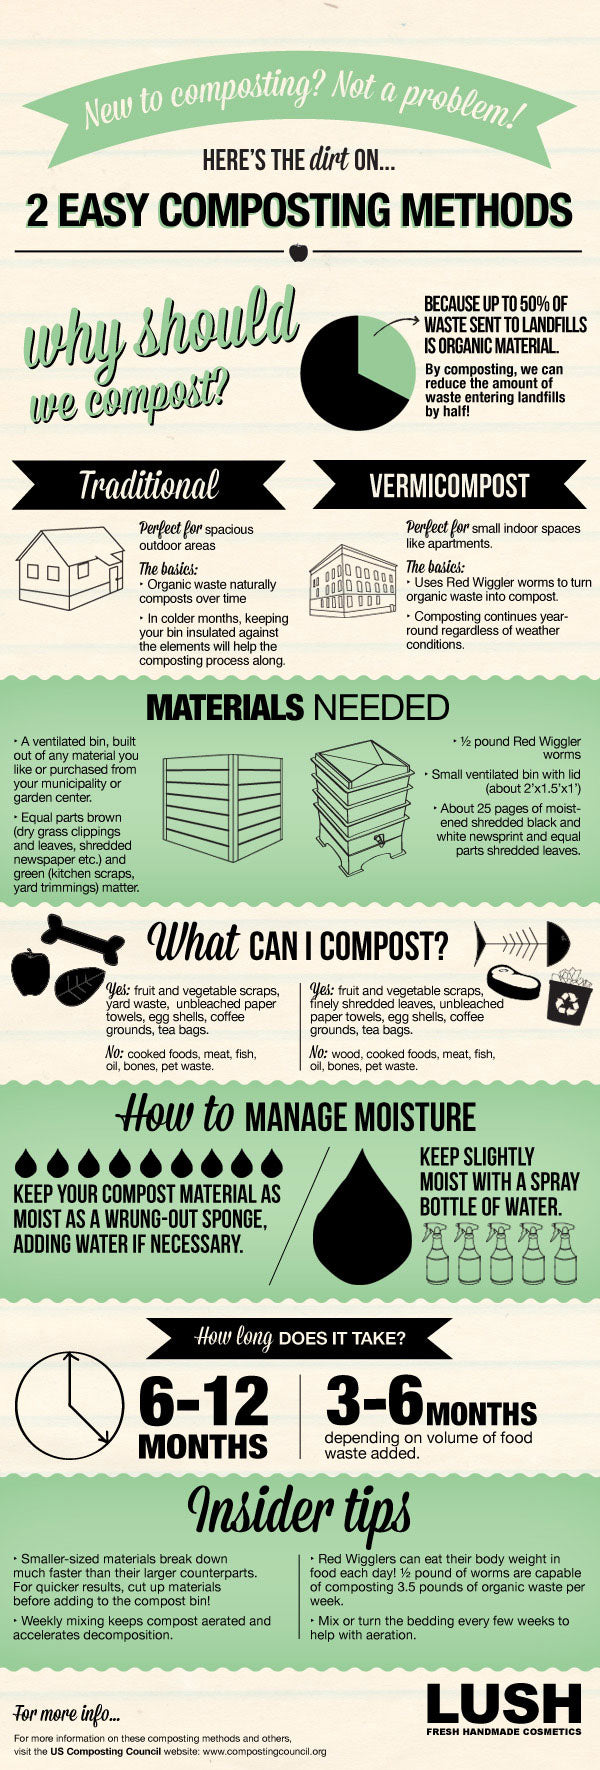 composting-methods-for-newbies